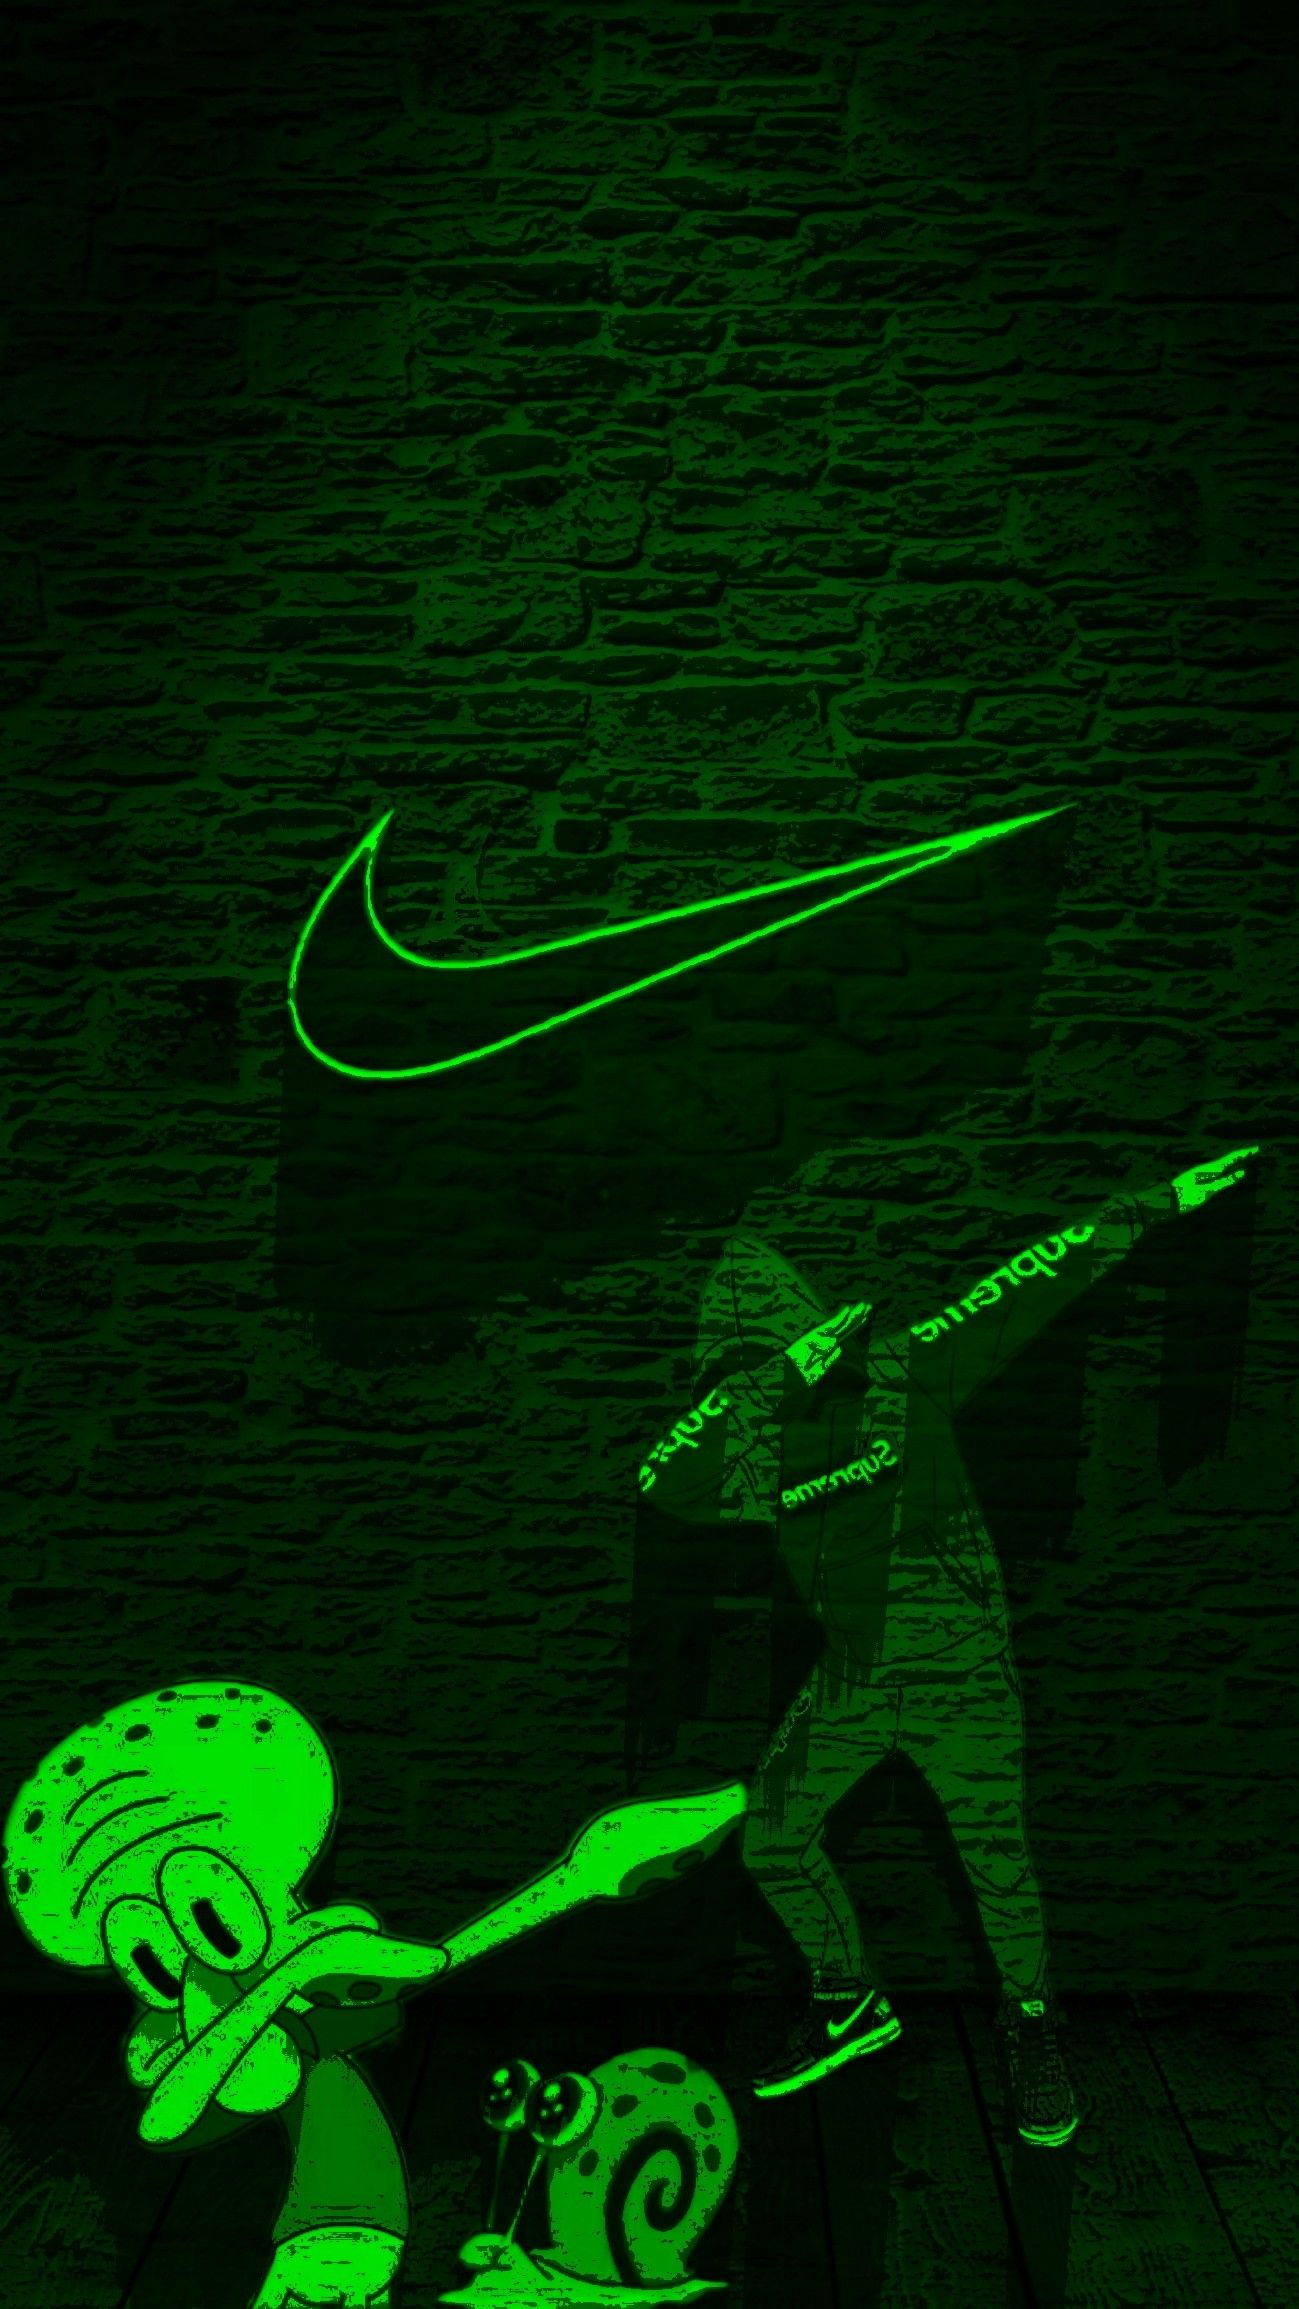 Pin By Hooter S Konceptz On Nike Wallpaper Nike Wallpaper Nike Art Love Wallpapers Romantic